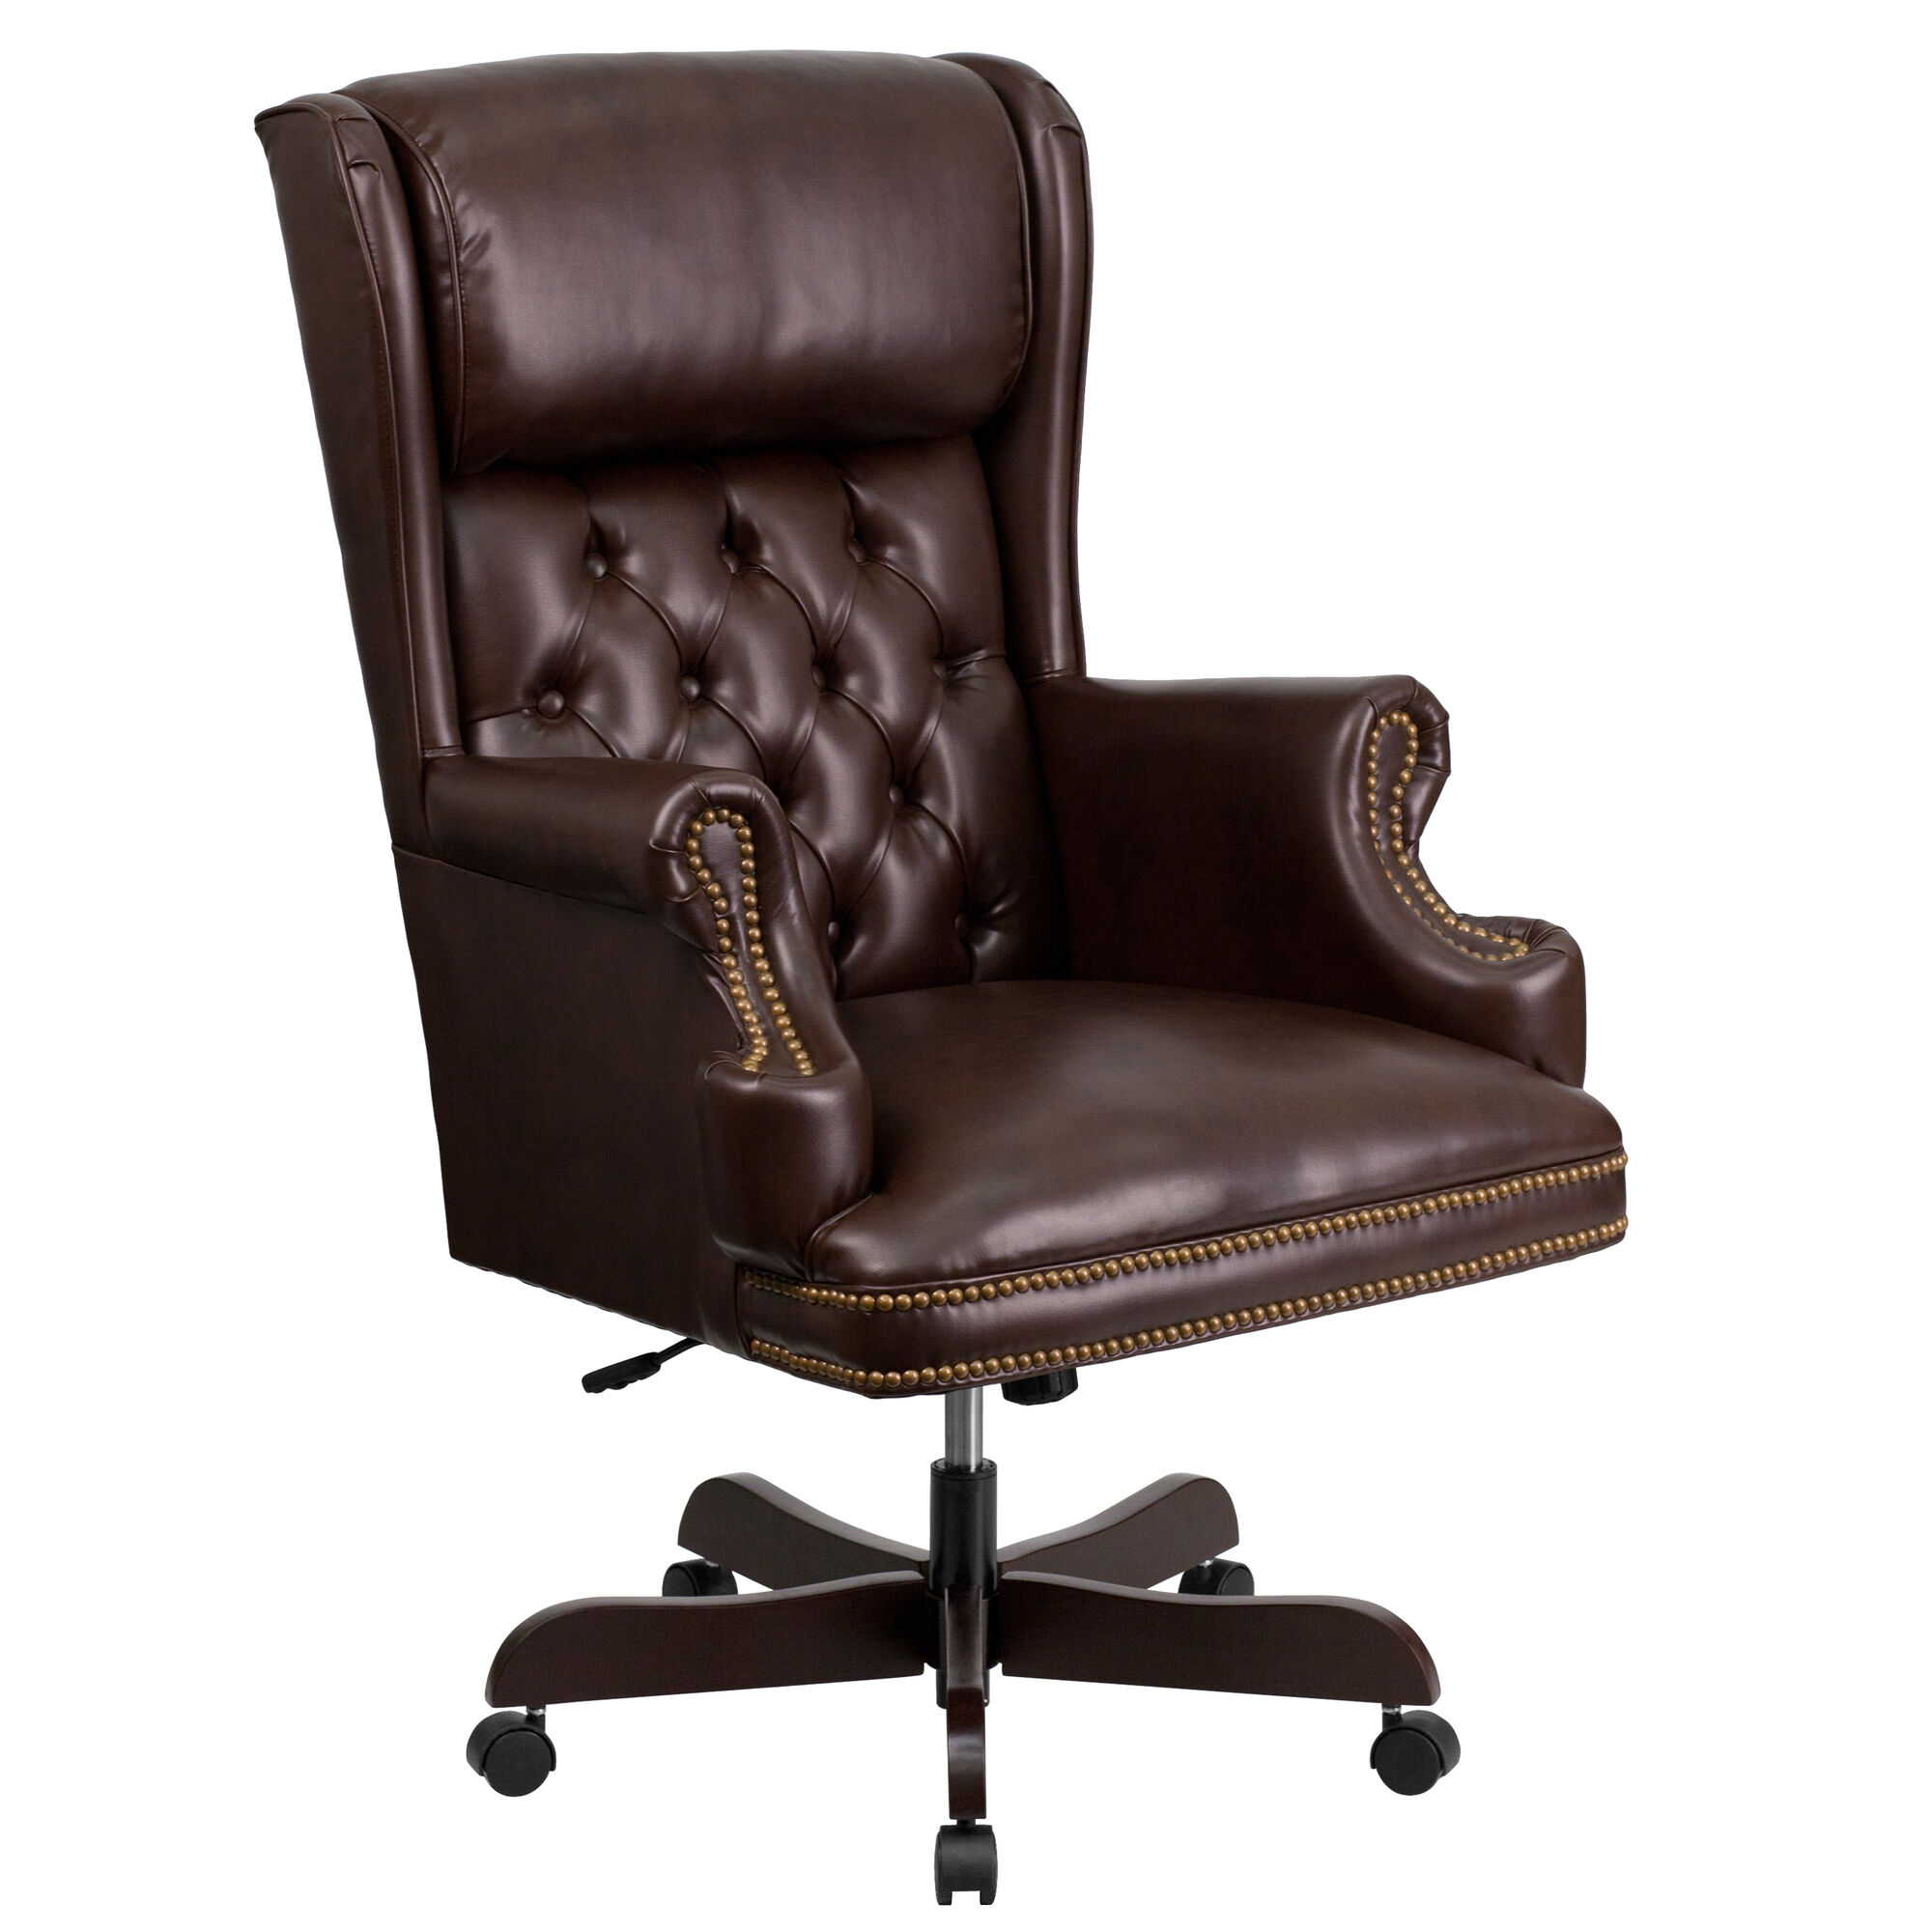 Admirable High Back Traditional Tufted Brown Leather Executive Ergonomic Office Chair With Oversized Headrest Nail Trim Arms Inzonedesignstudio Interior Chair Design Inzonedesignstudiocom